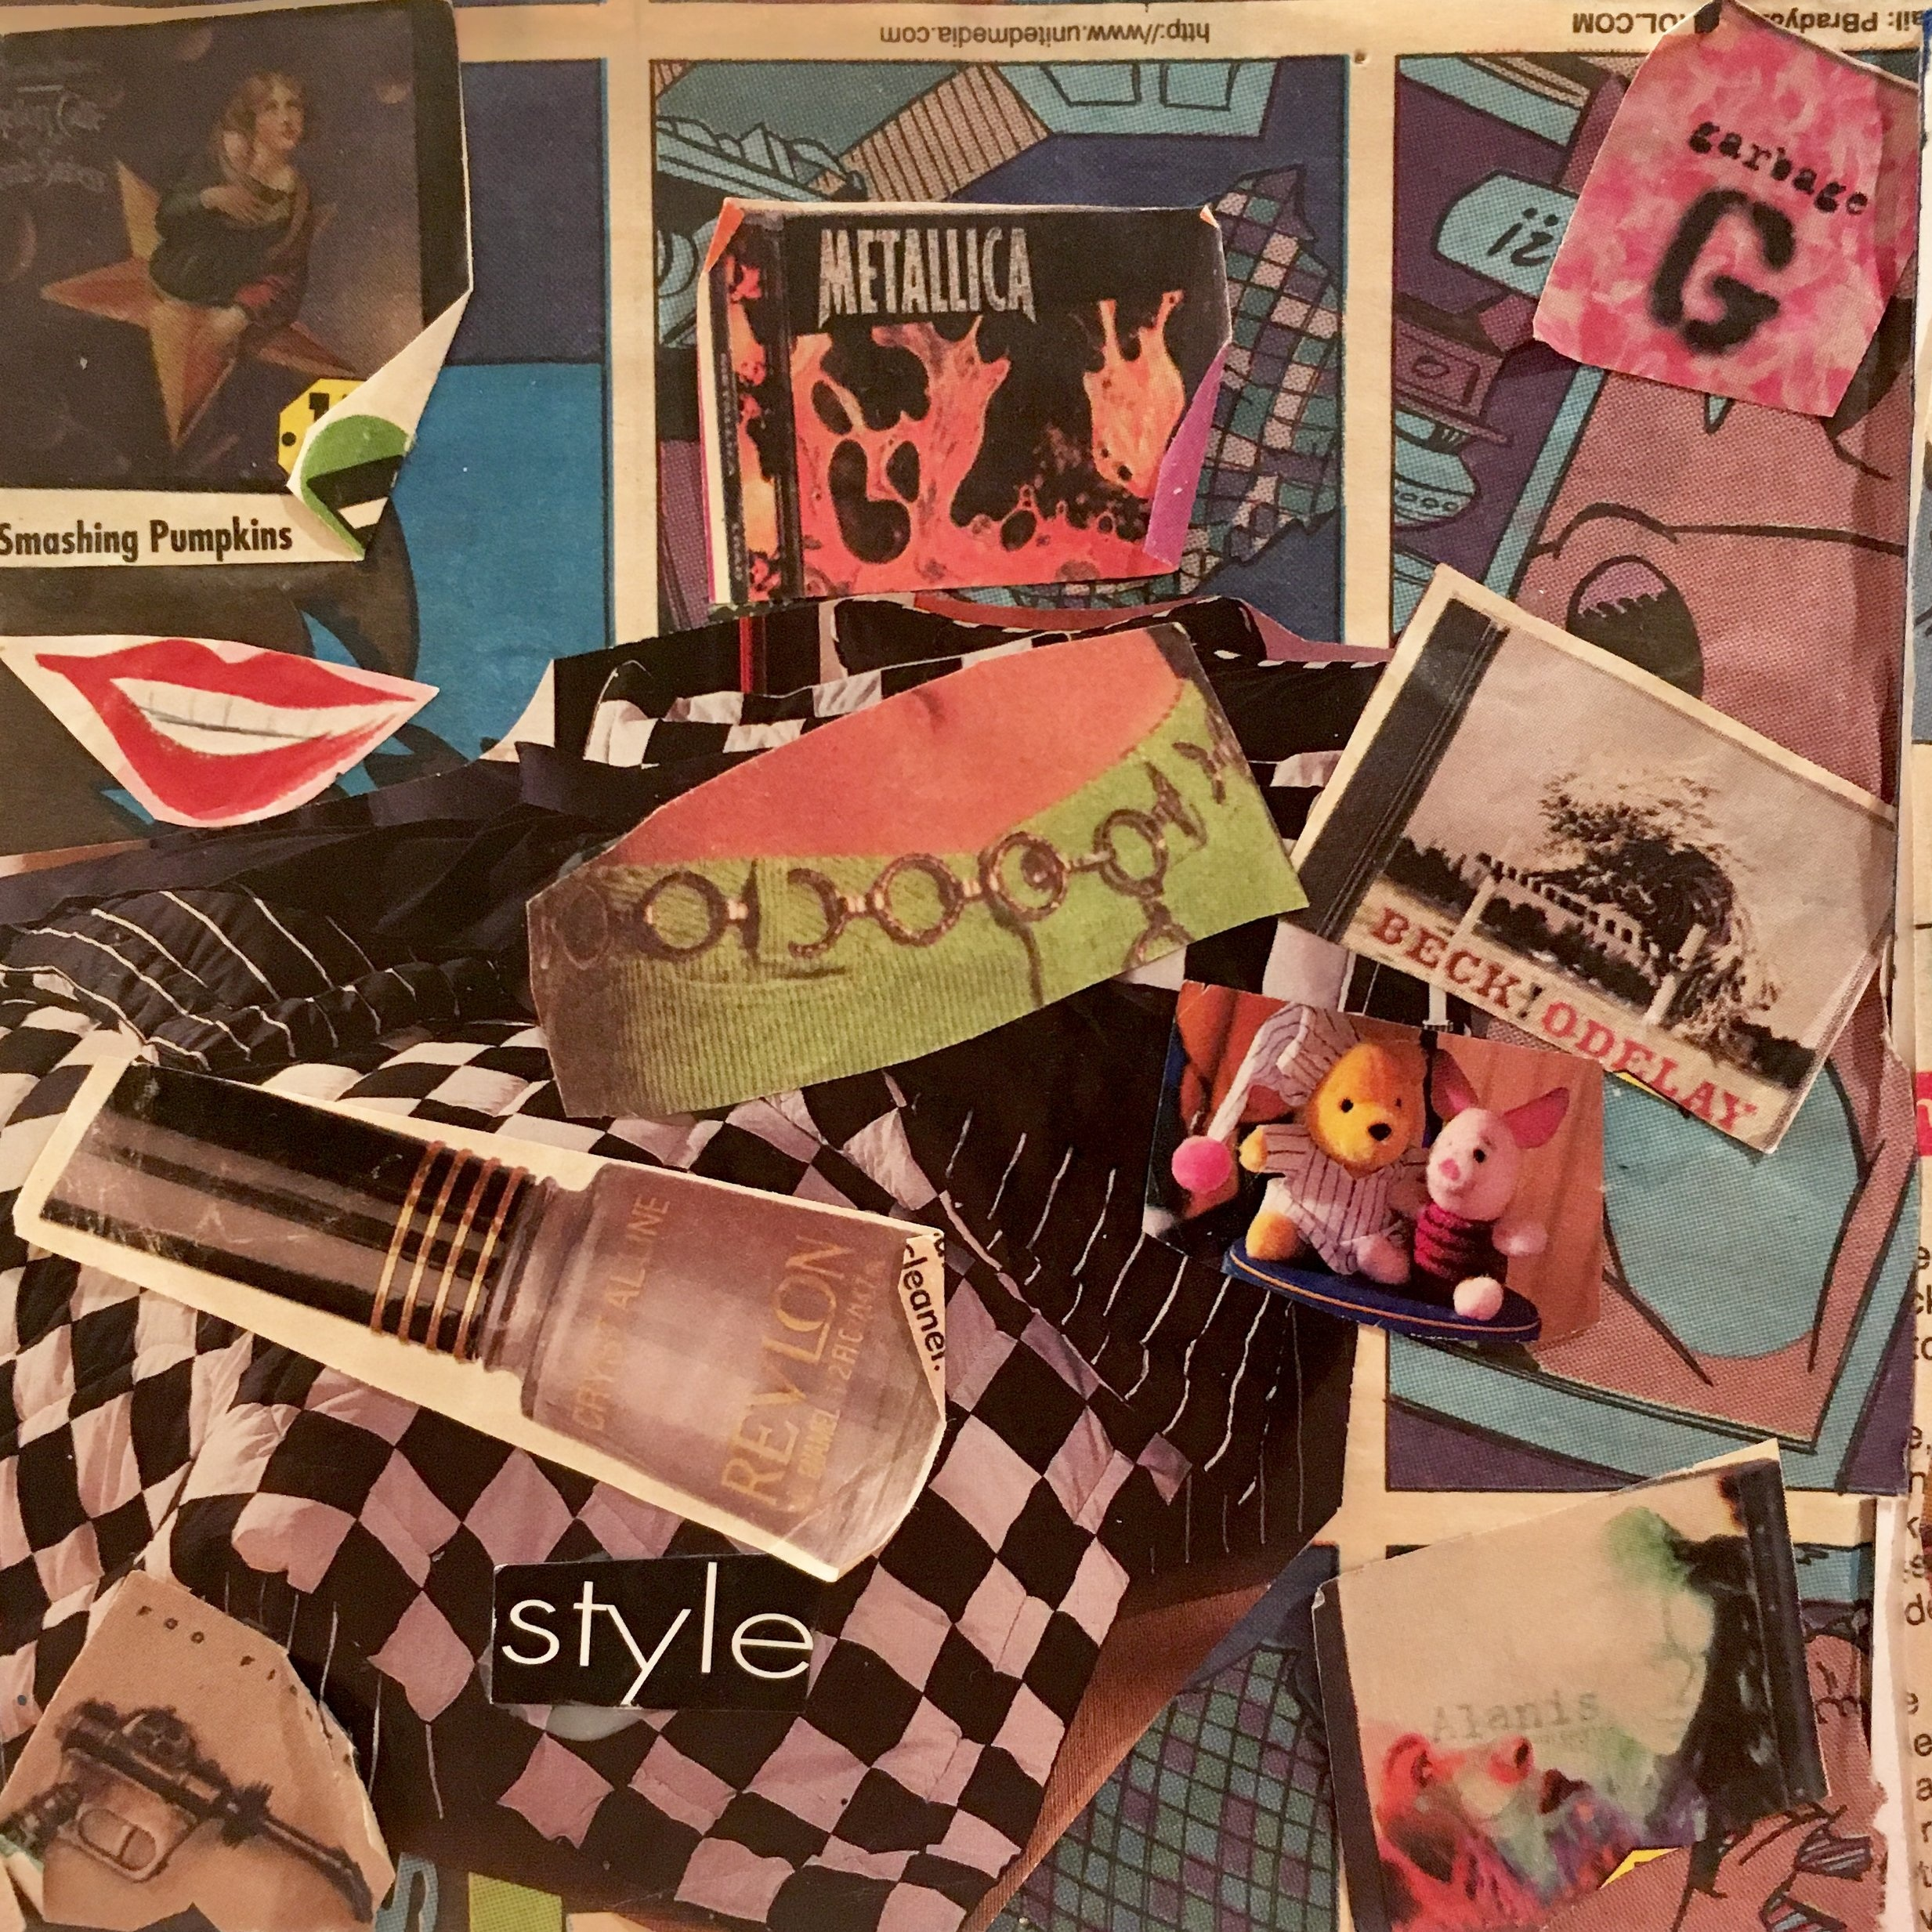 A photograph of an actual 1996 artifact: a side of a cube collage I made in eighth grade.